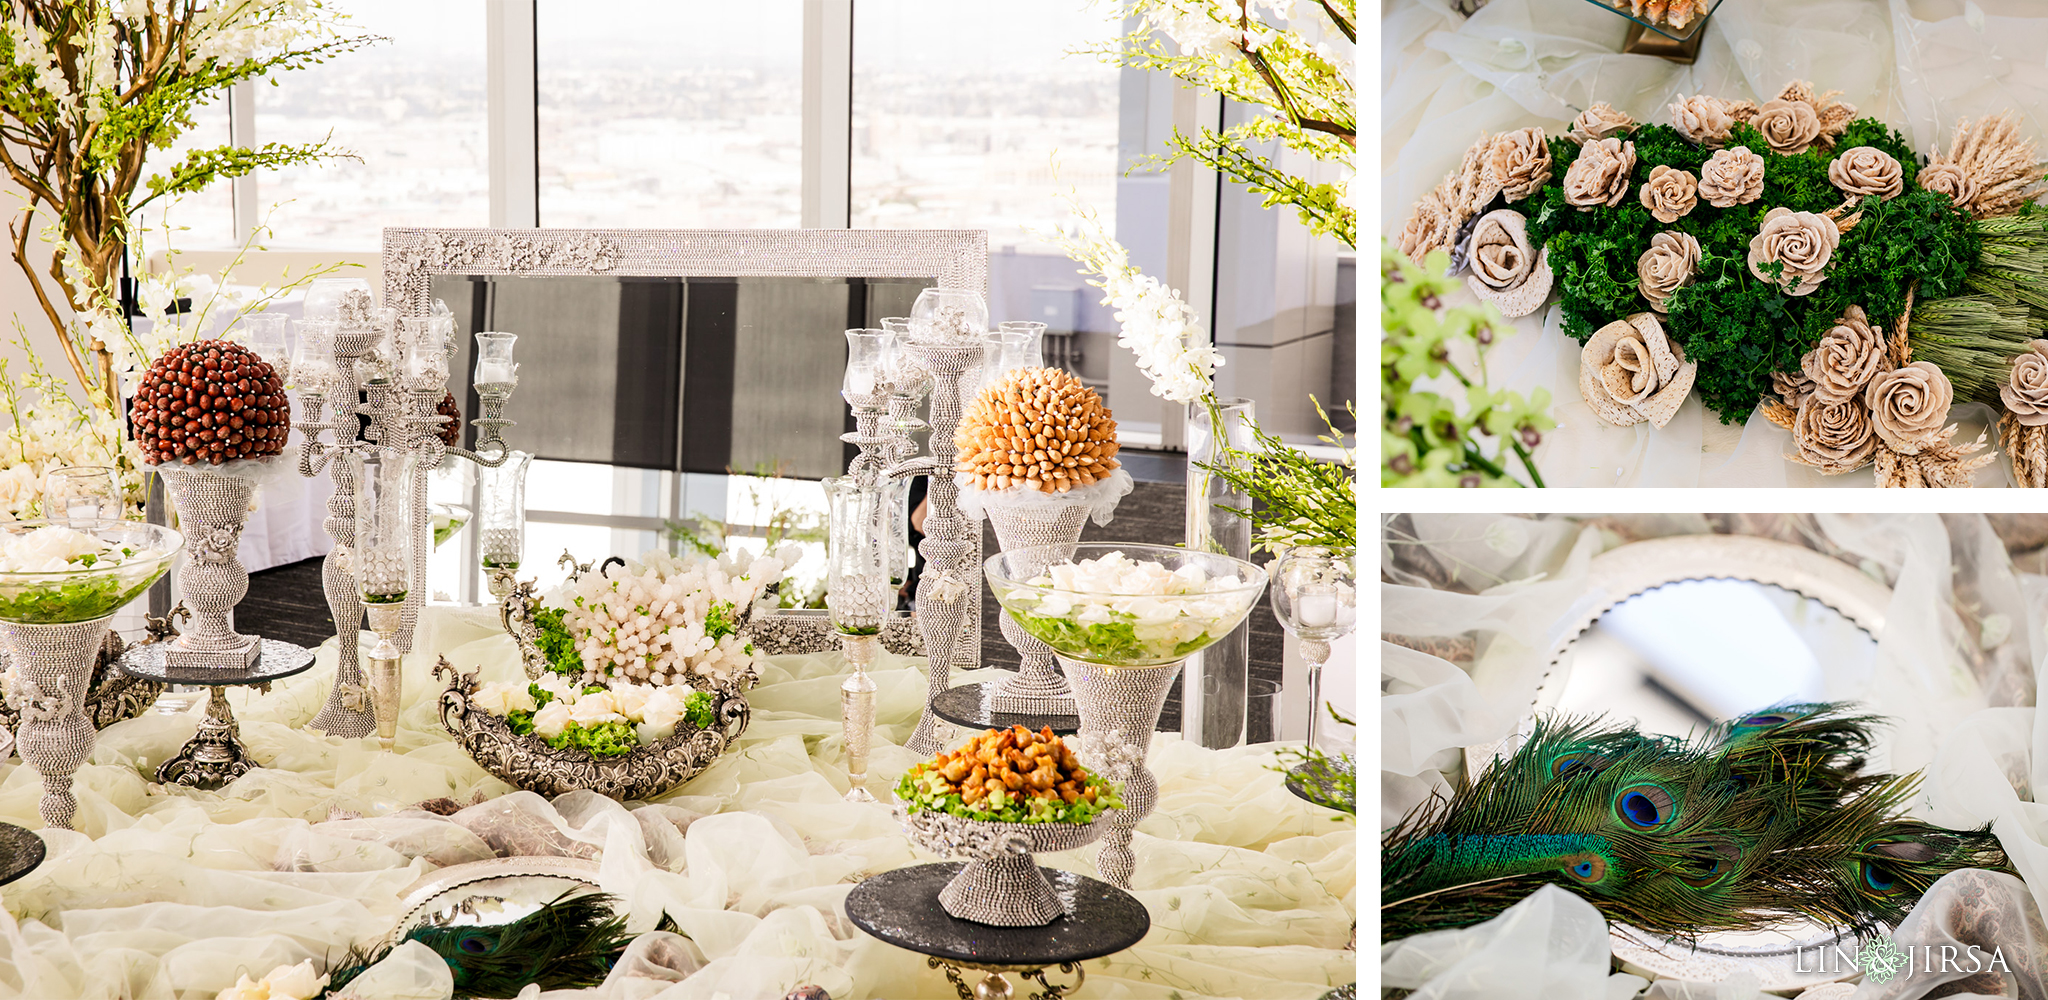 16 SkyStudio Los Angeles Persian Wedding Photography